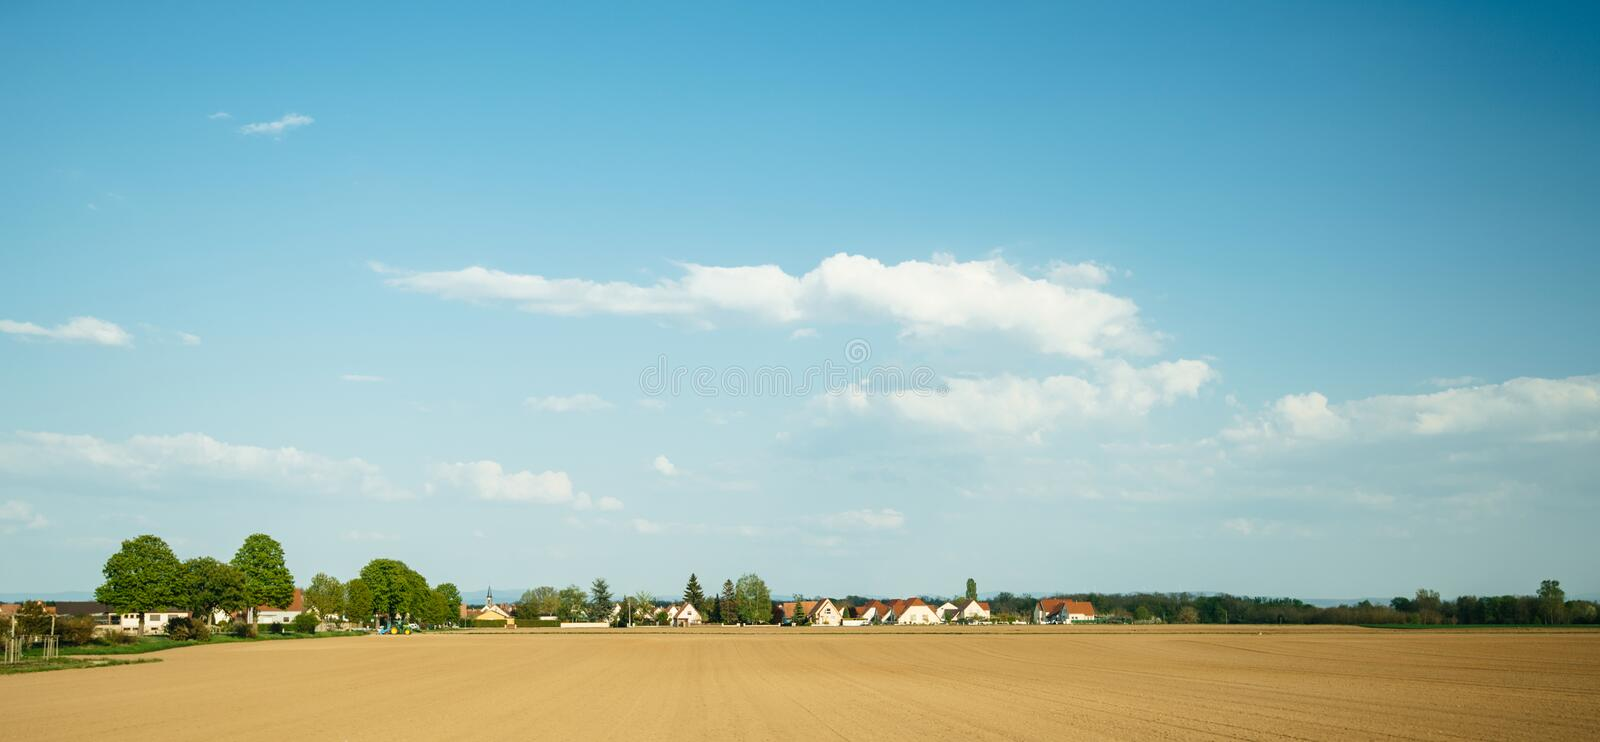 Typical French village with multiple houses, royalty free stock photos